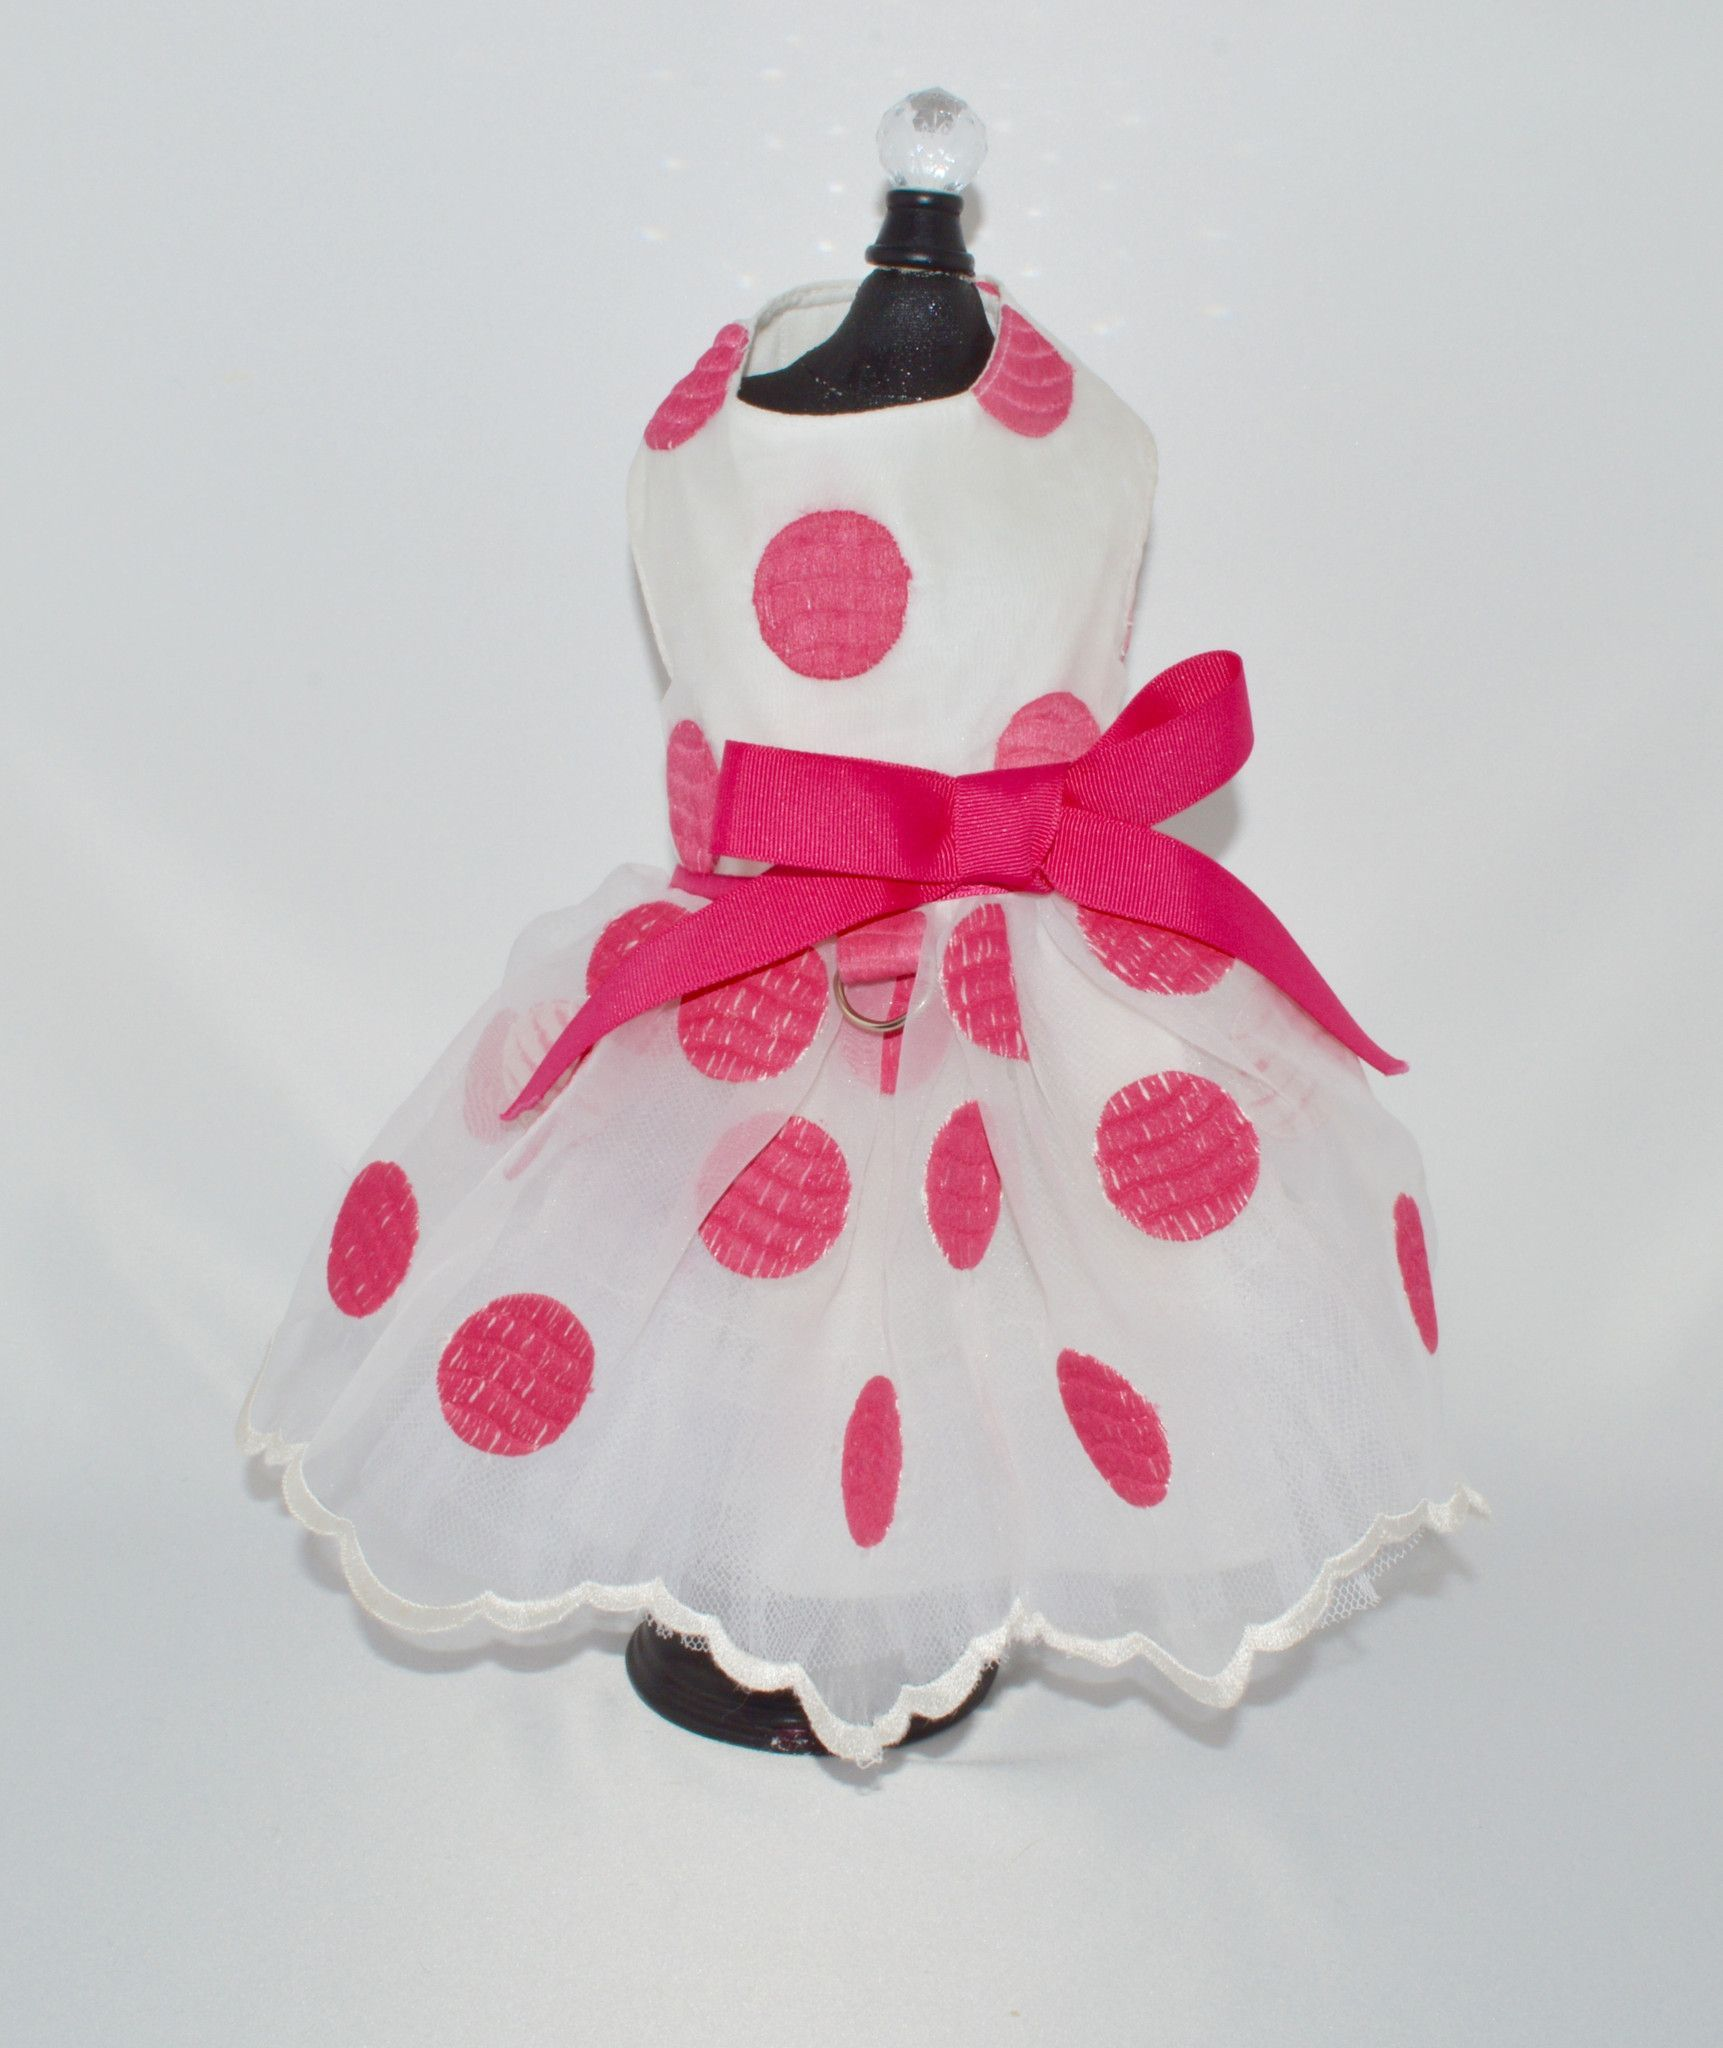 0d47b620b9e Bella s White and Hot Pink Polka Dot Harness Dog Dress –  SpoiledDogDesigns.com - Palm Springs